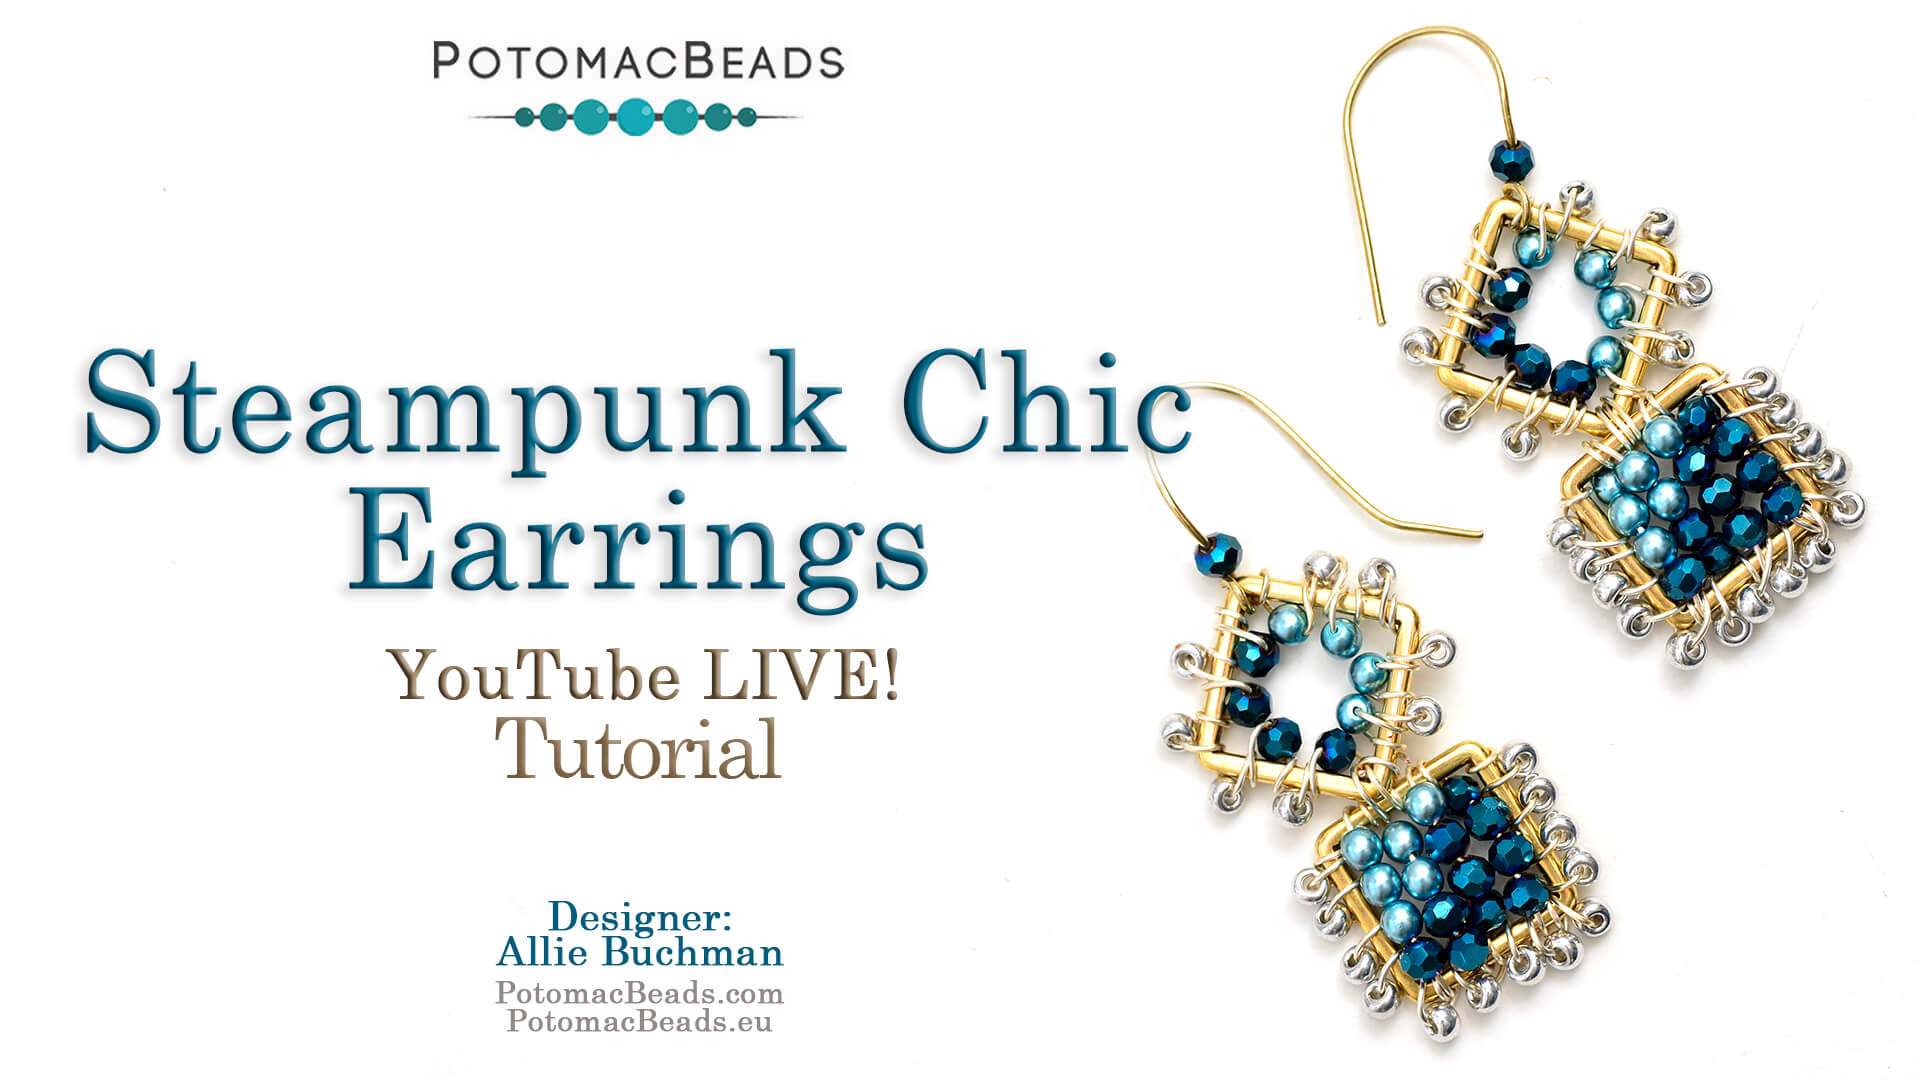 How to Bead Jewelry / Videos Sorted by Beads / Pearl Videos (Czech, Freshwater, Potomac Pearls) / Steampunk Chic Earrings